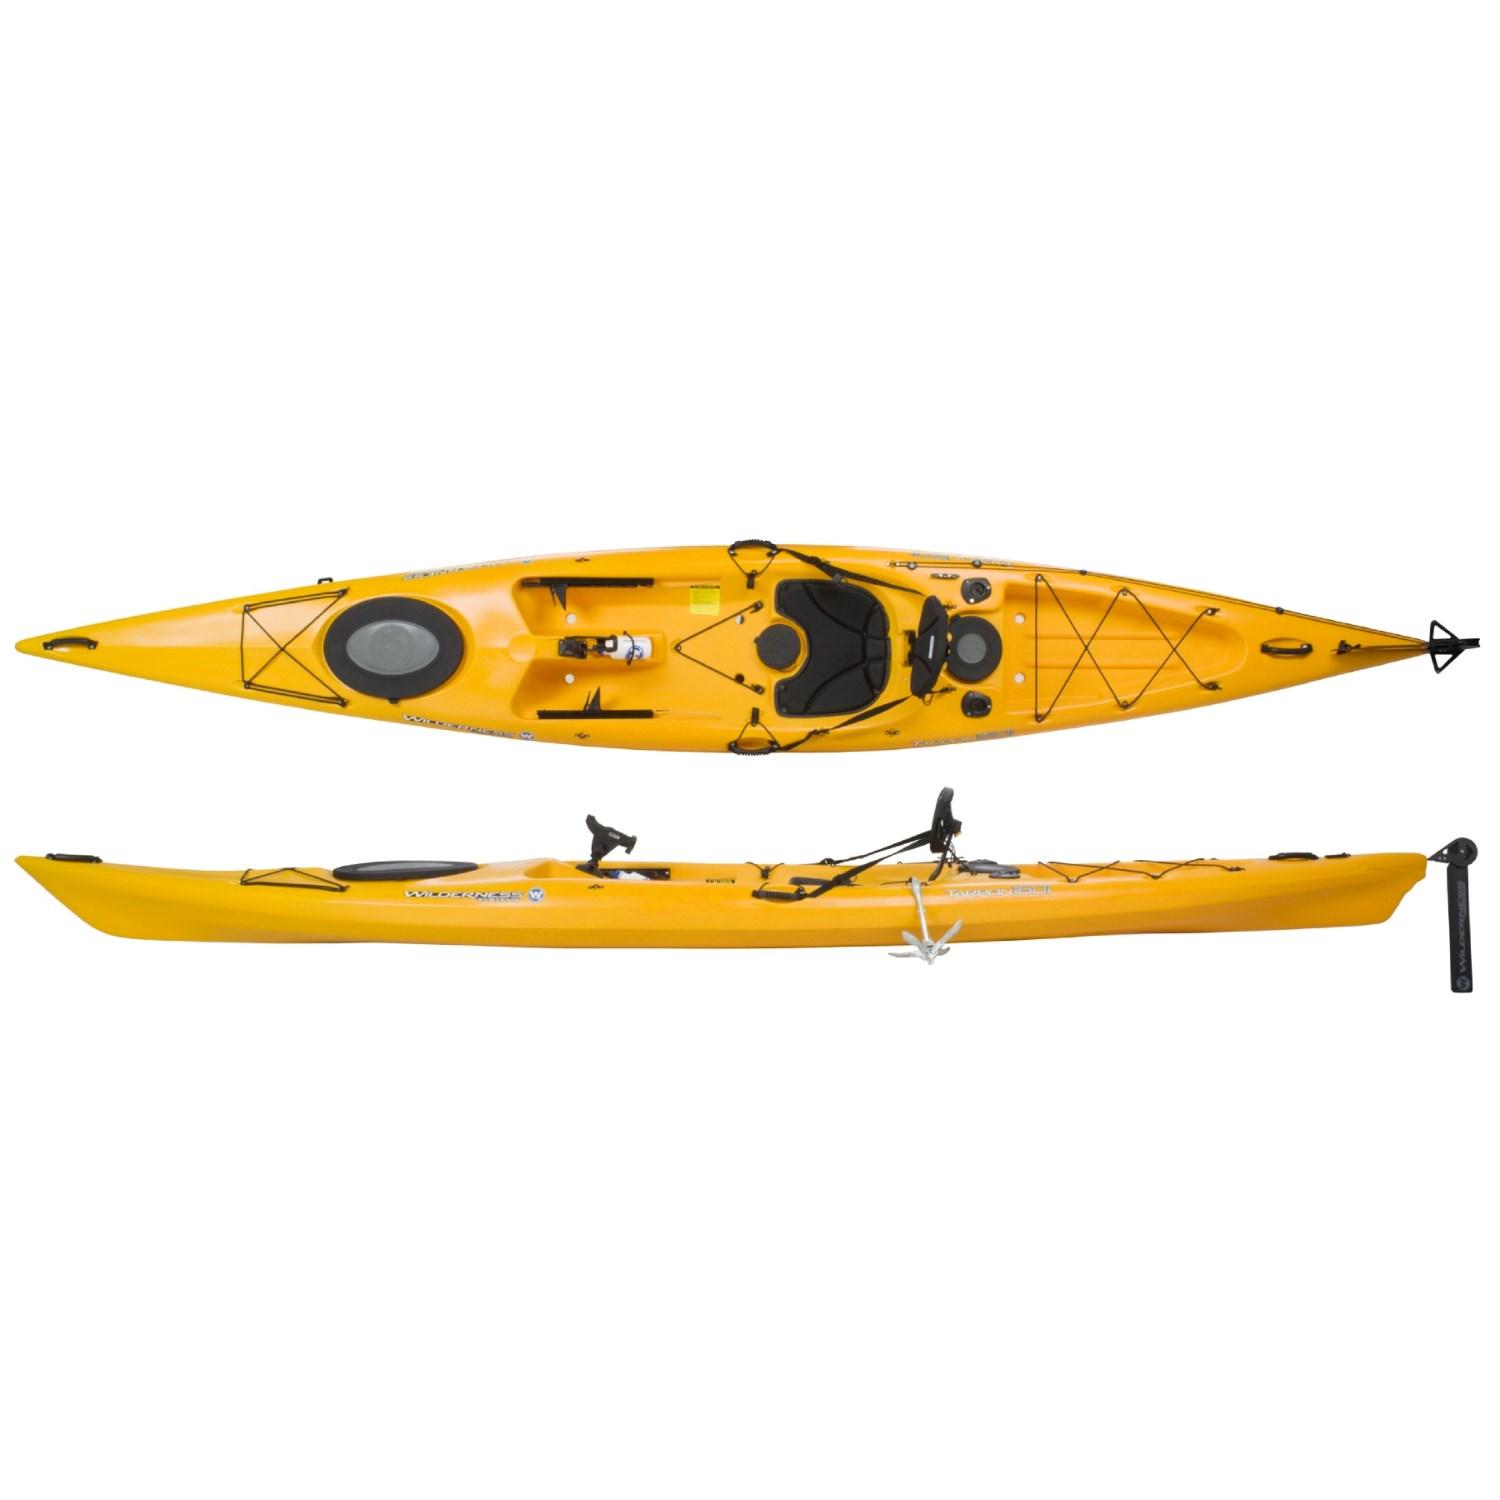 Wilderness systems tarpon 160i angler fishing kayak with for Wilderness systems fishing kayaks